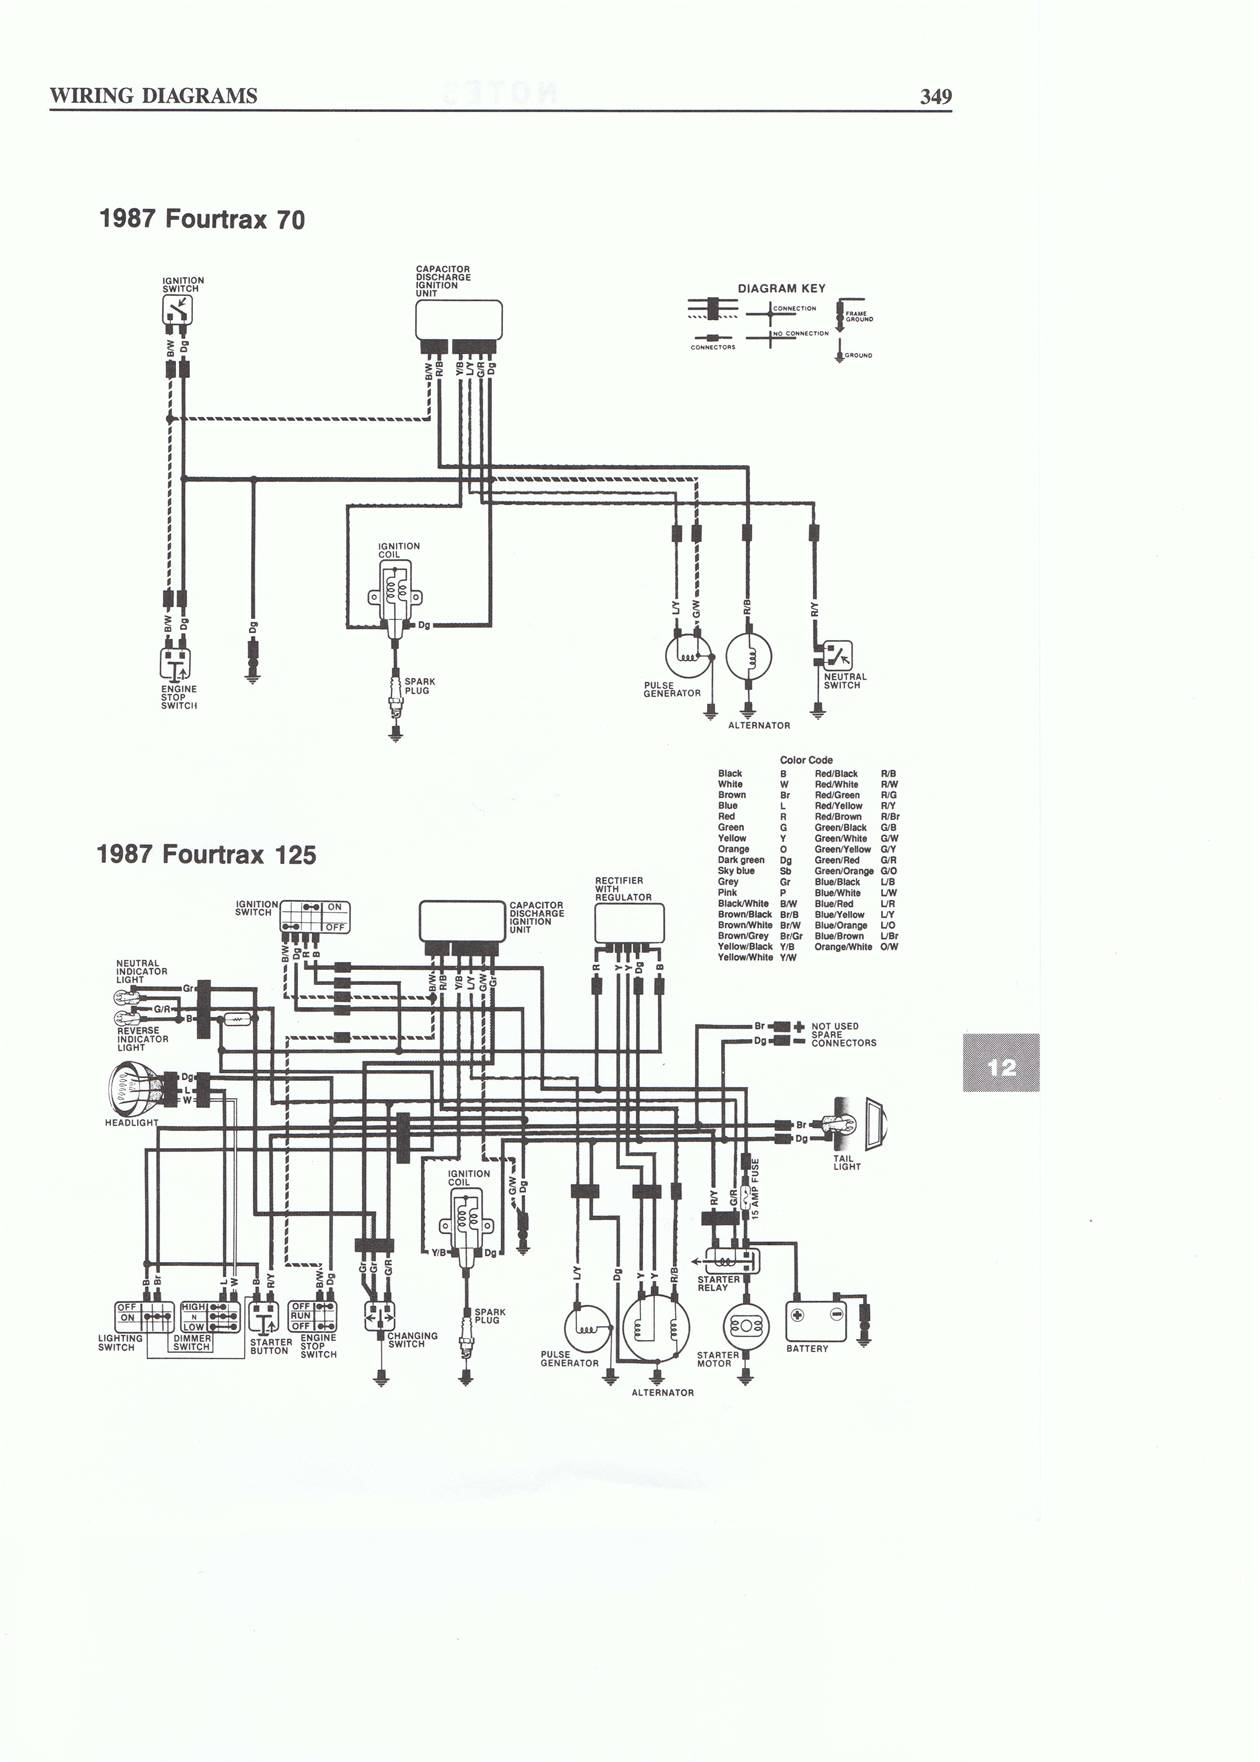 Dune Buggy Engine Parts List Schematics Drawings Wiring Library. Gy6 Engine Wiring Diagram Kill Switch. Wiring. Dune Buggy Engine Wiring Diagram At Scoala.co